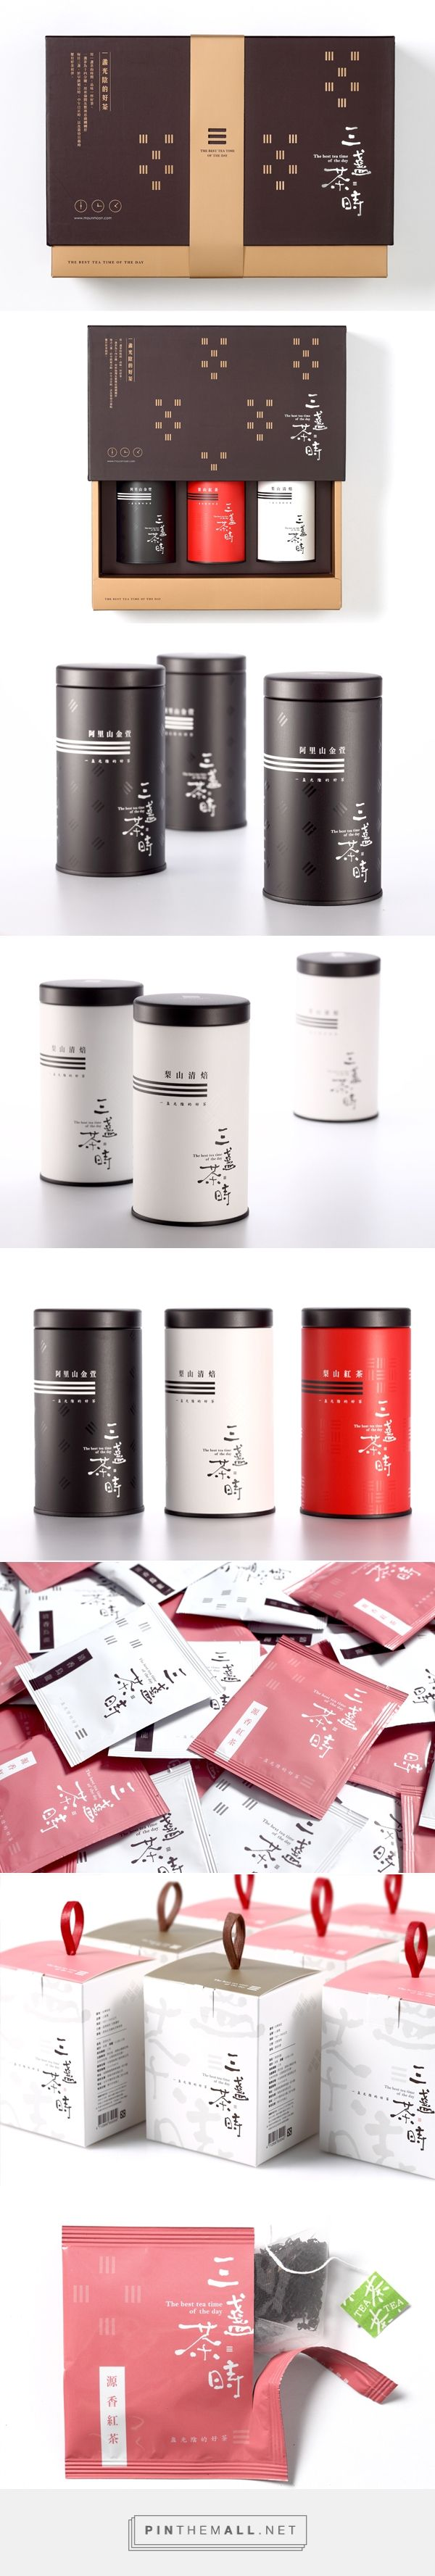 三盞茶時 | 存在設計 @ Design Group curated by Packaging Diva PD. The Best Tea Time Of The Day.